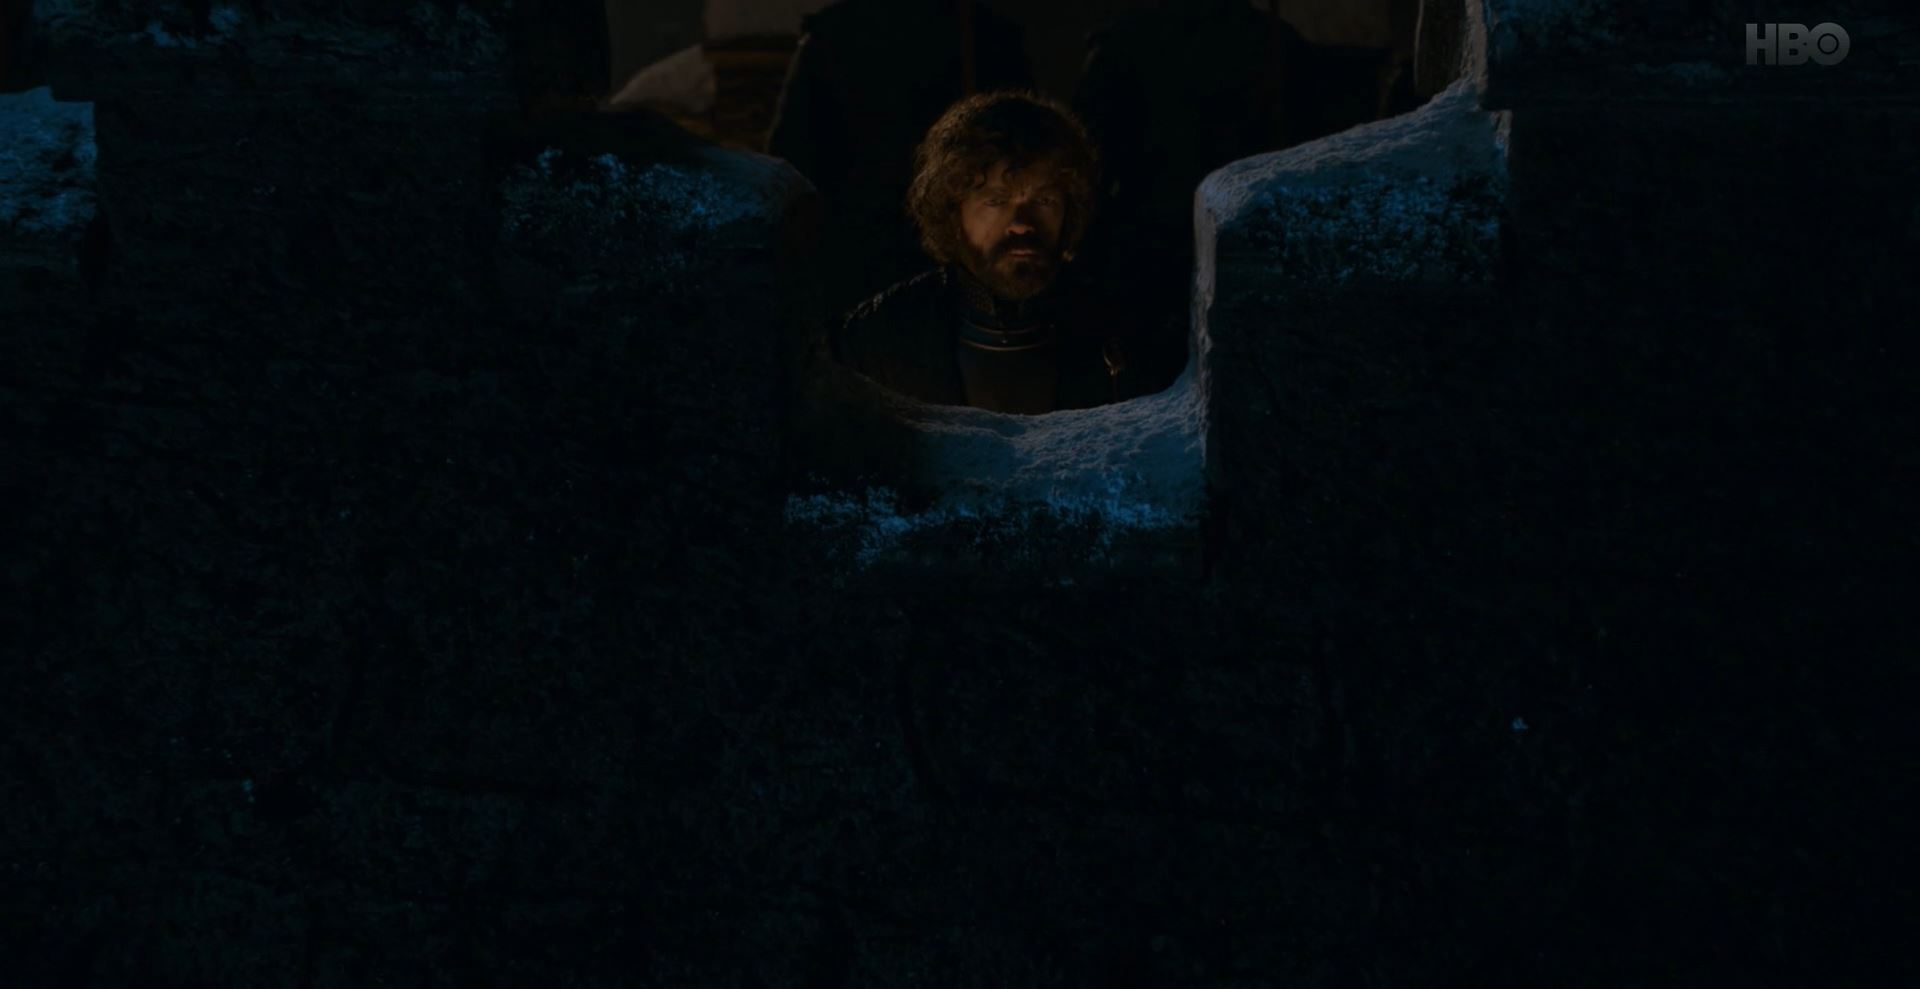 Game of Thrones S08E02 A Knight of the Seven Kingdoms Review - Tyrion watches the army of the dead